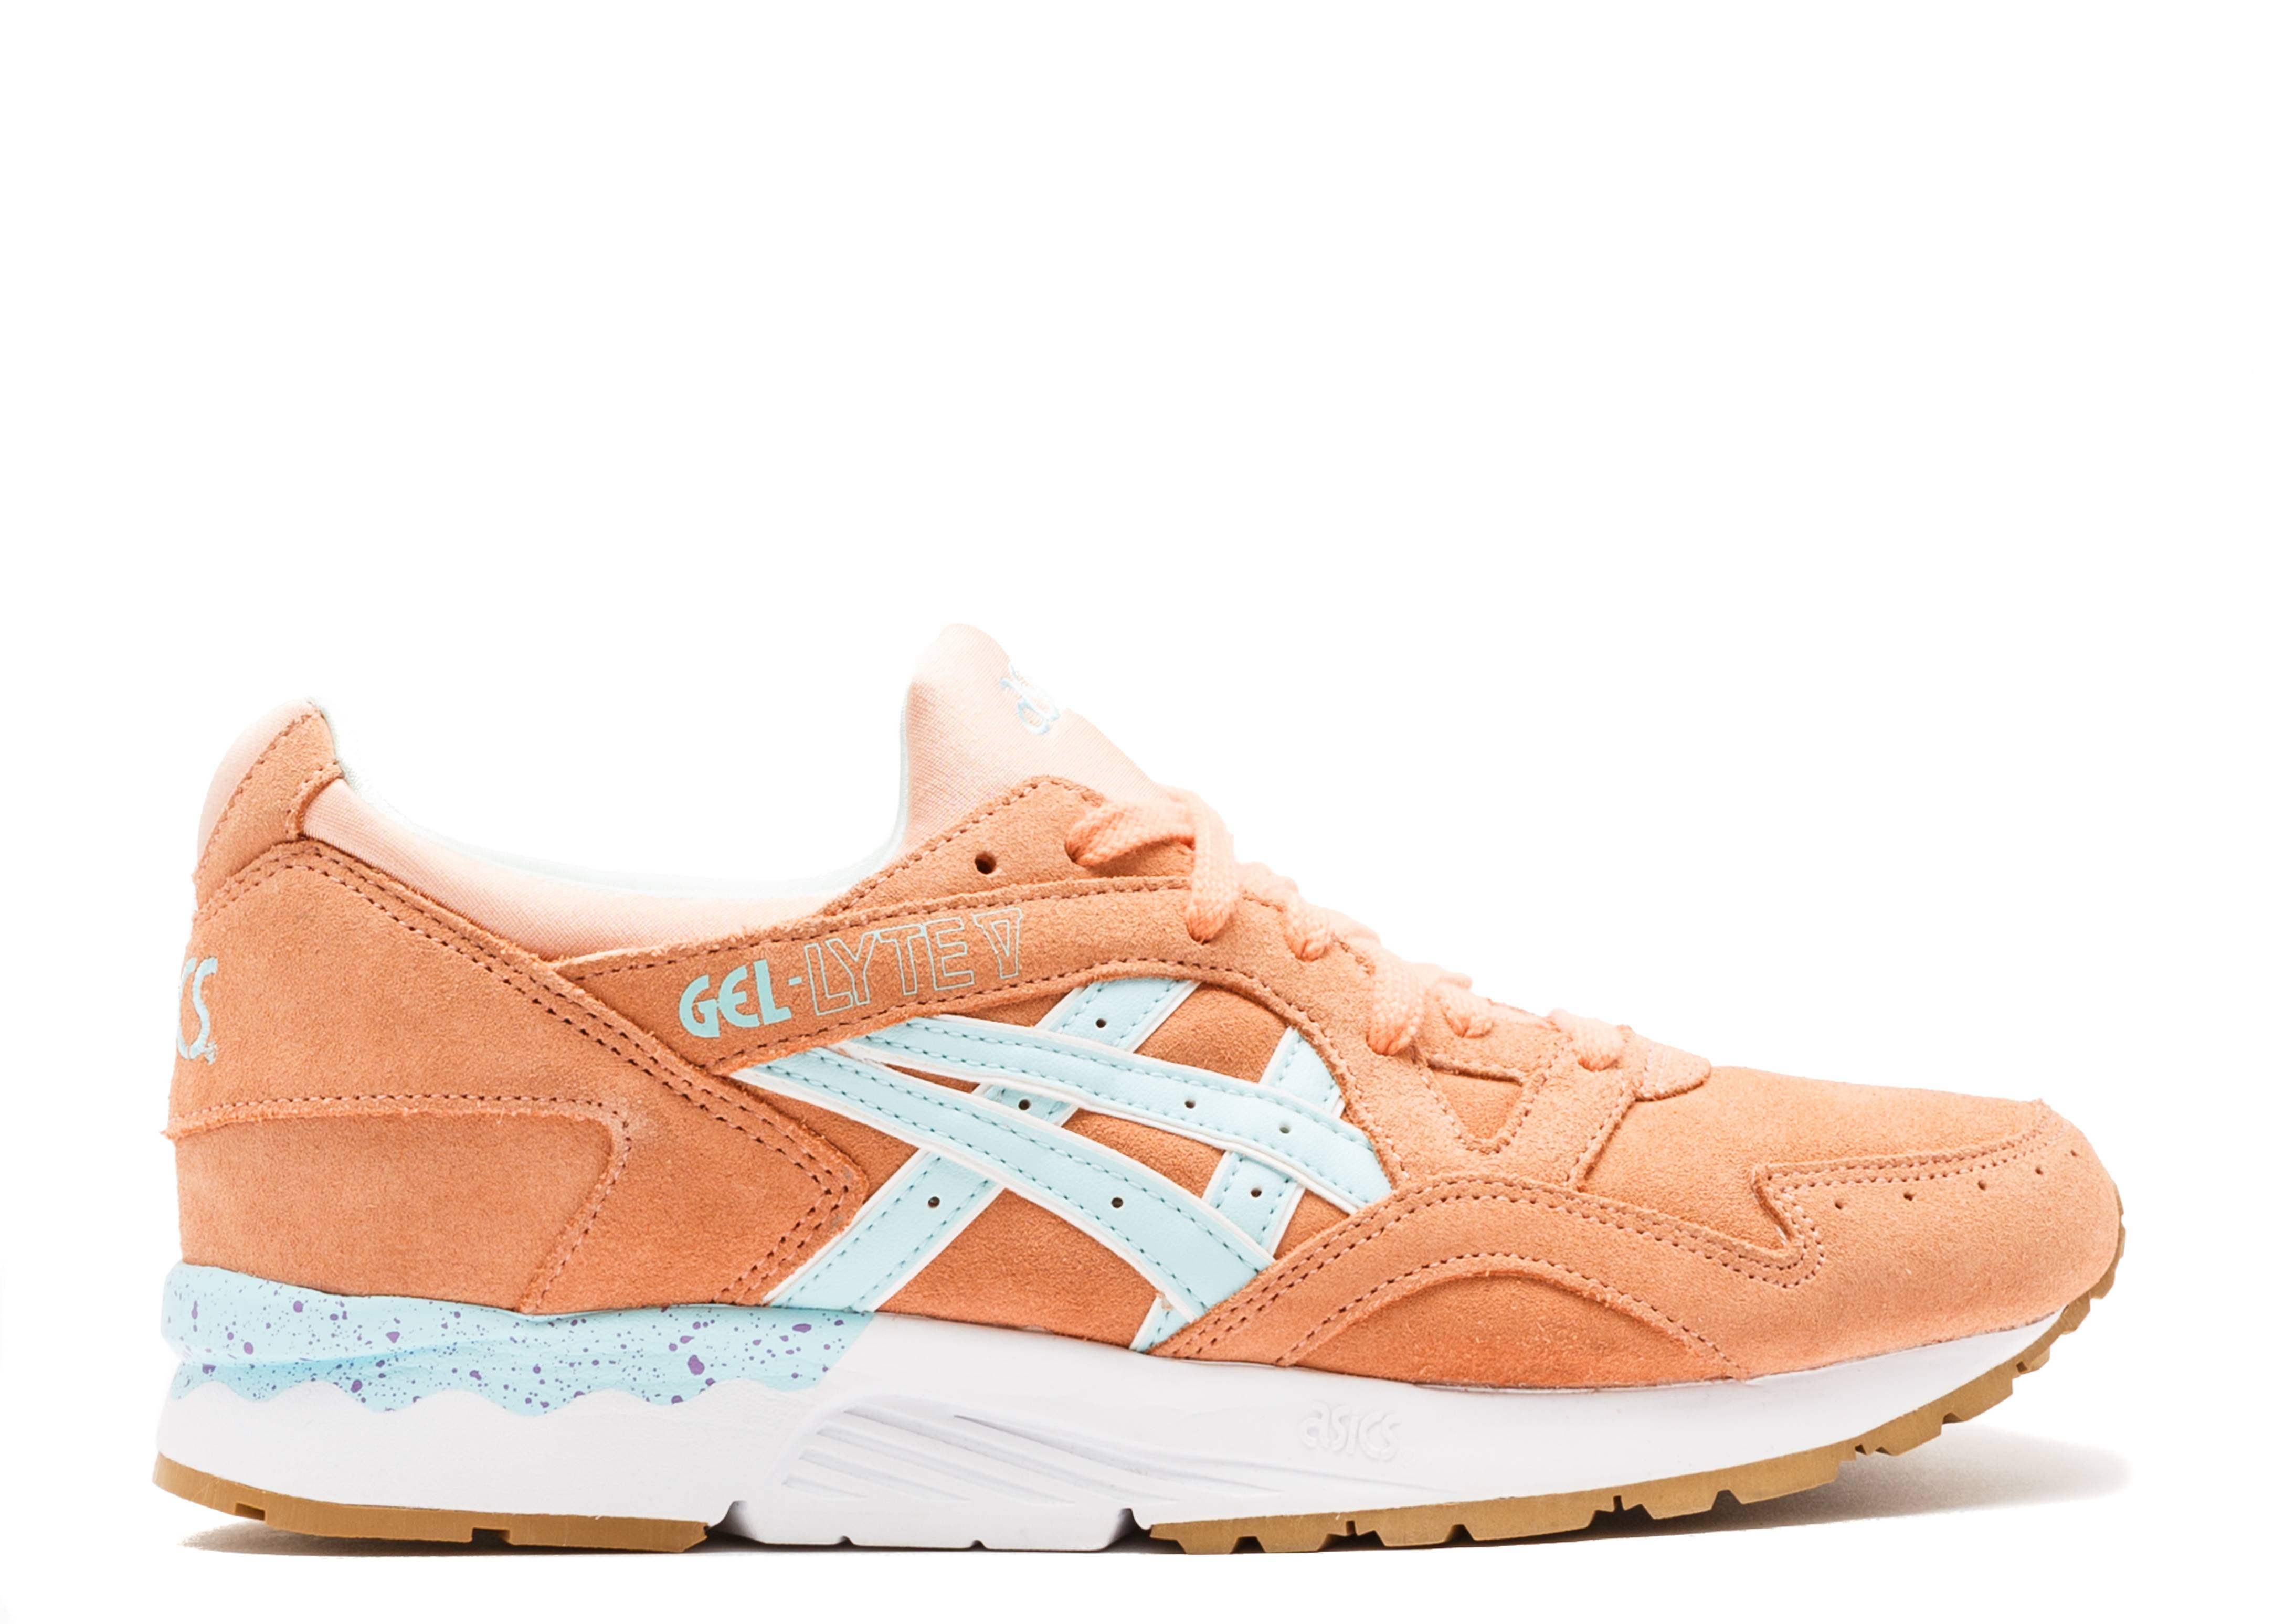 asics full bloom gel lyte v sneaker